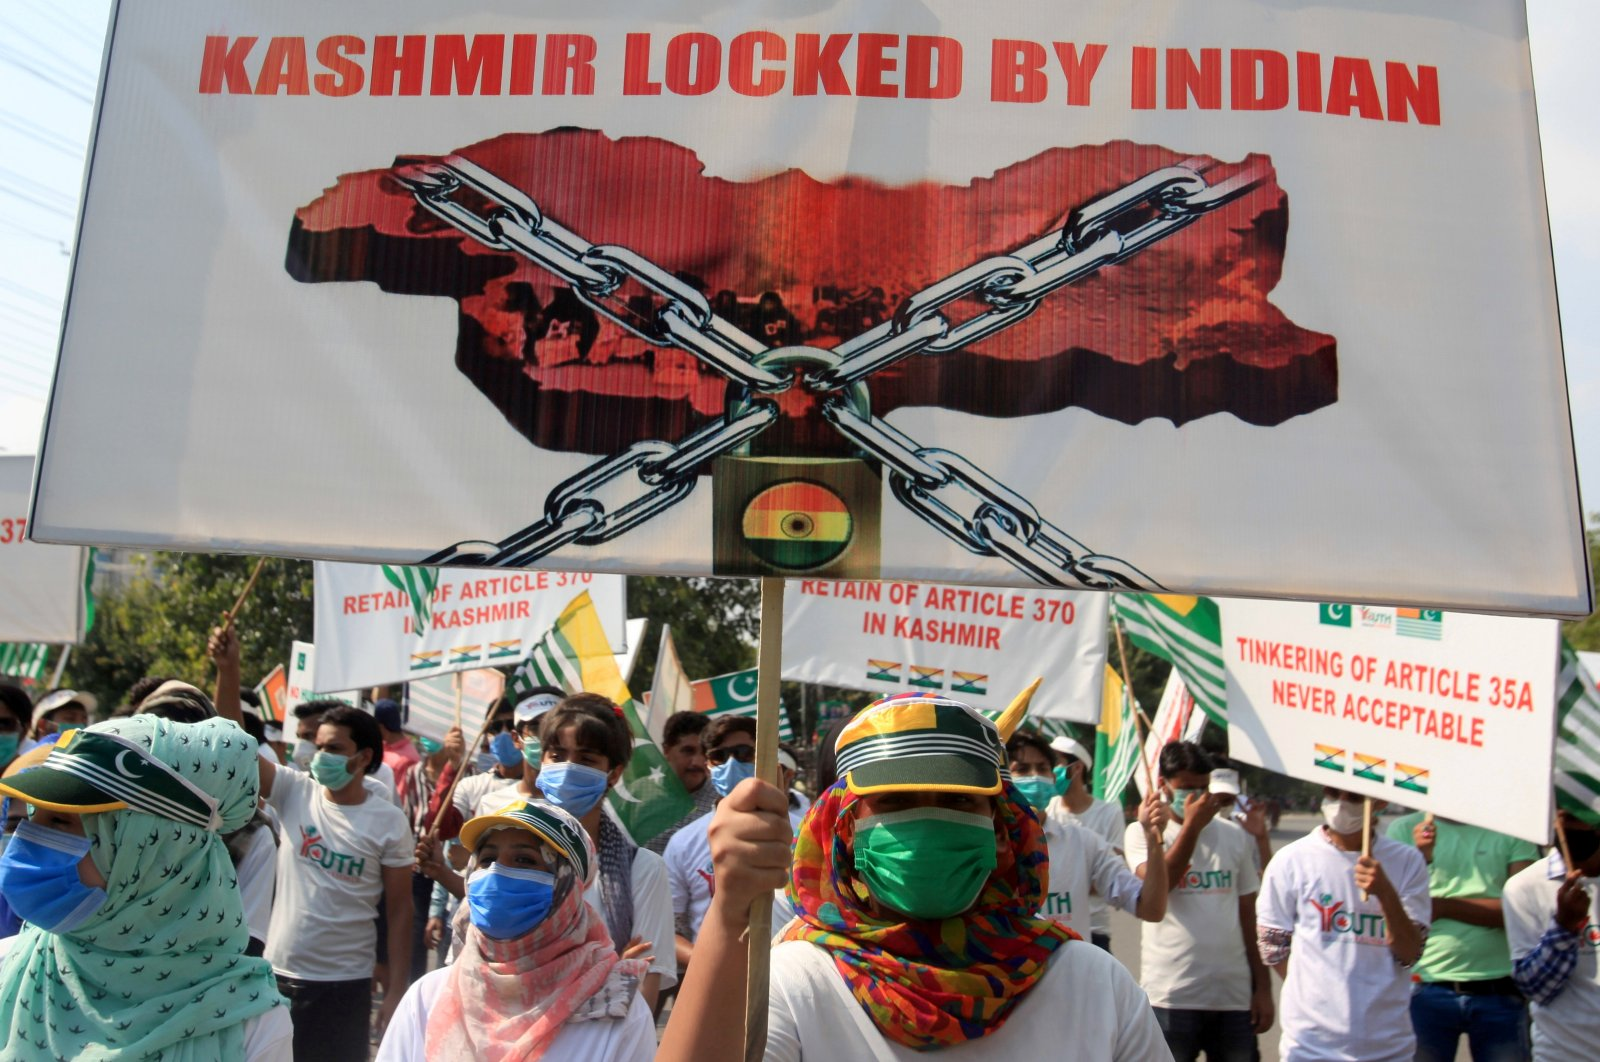 """People carry signs as they mark the """"Day of Exploitation in Kashmir"""" one year after the Indian government split the state of Jammu and Kashmir into two federally controlled territories and took away its special privileges, during a march in Lahore, Pakistan, Aug. 5, 2020. (Reuters Photo)"""